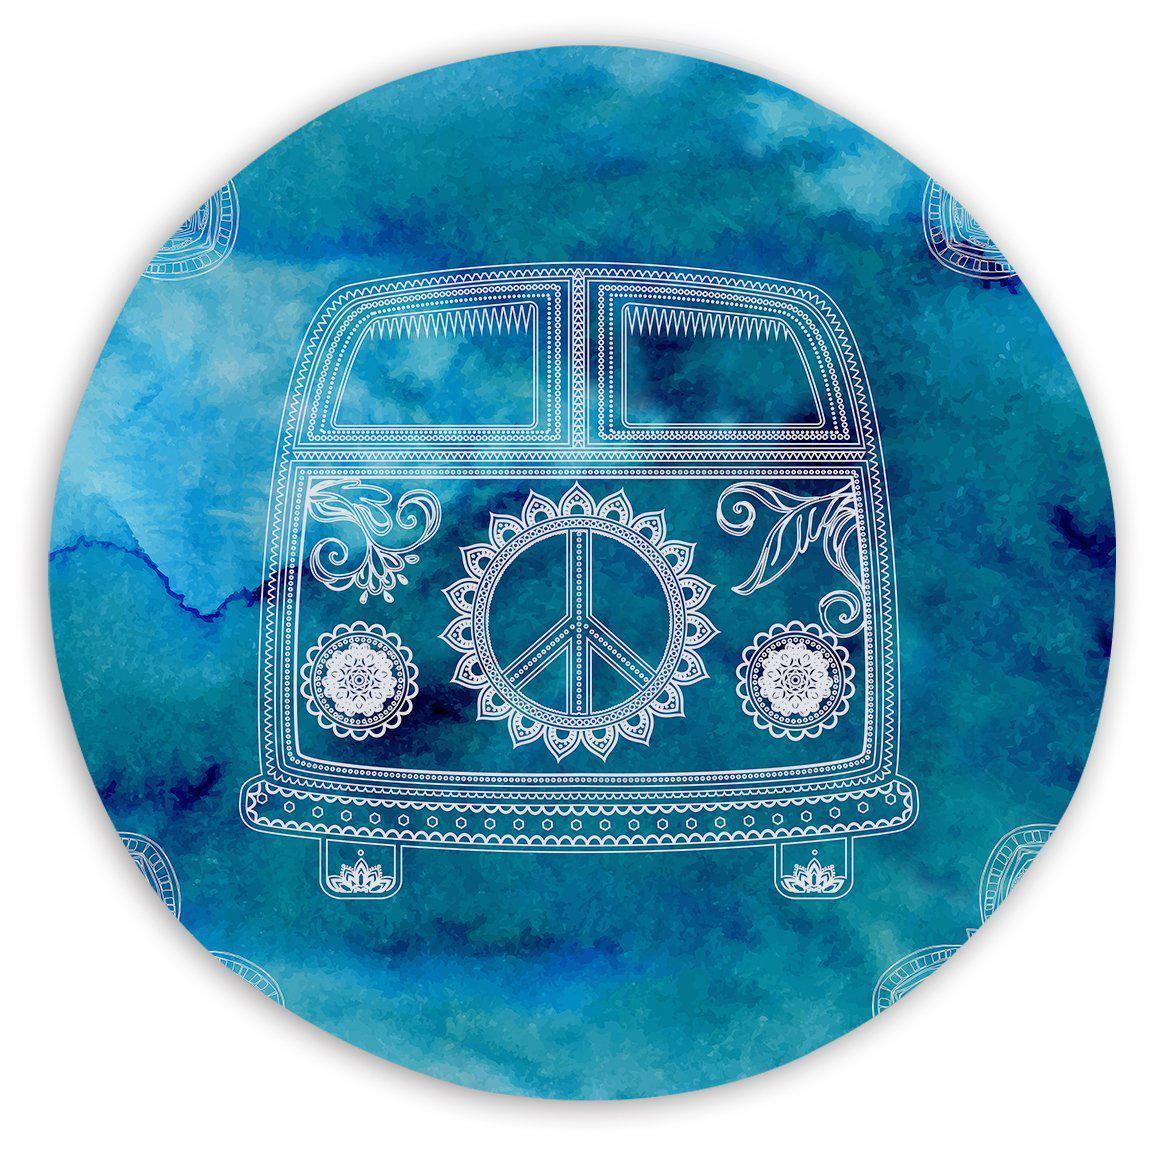 Sand Free Beach Towel-The Cool Kombi Round Sand-Free Towel-Coastal Passion